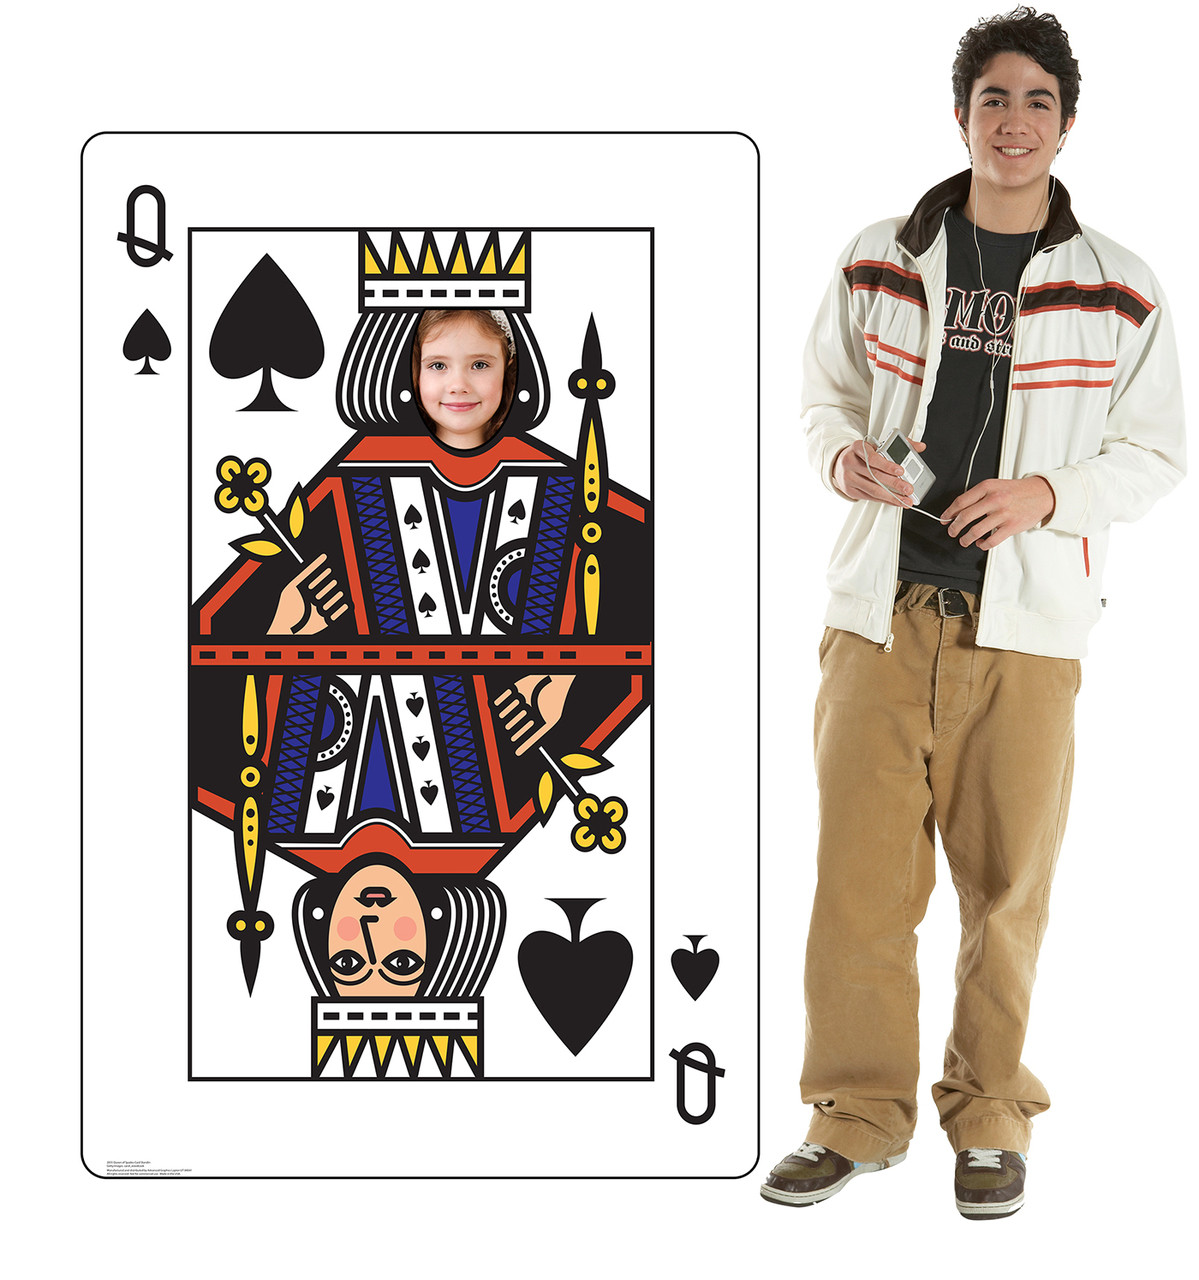 Life-size cardboard standee of the Queen of Spades Card standin with model.